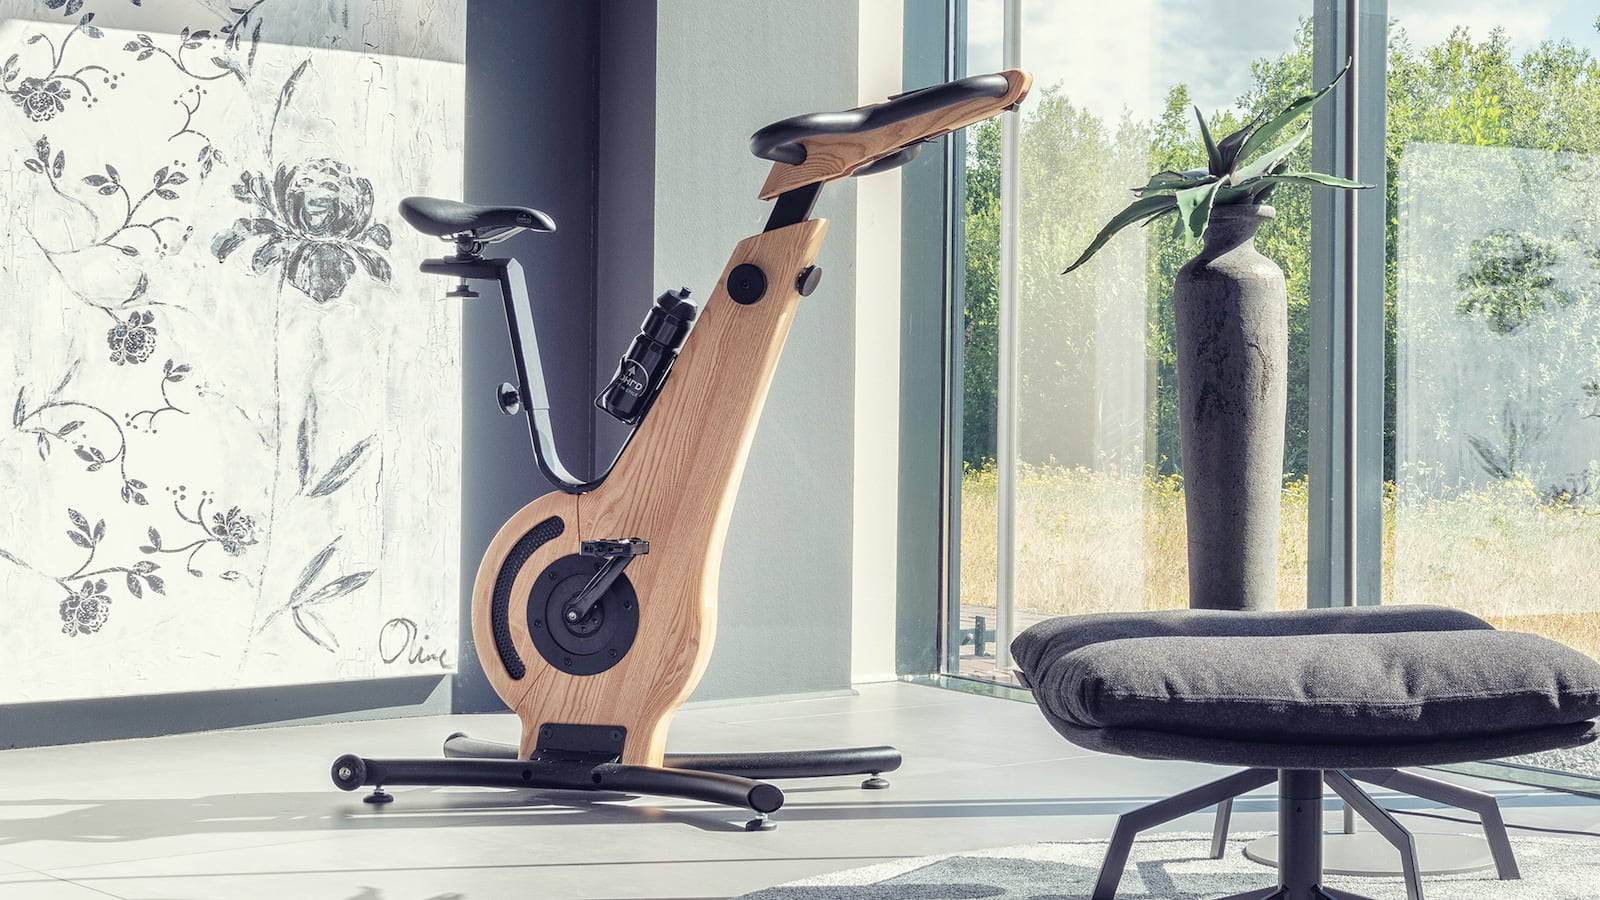 Must-see home fitness gear and accessories